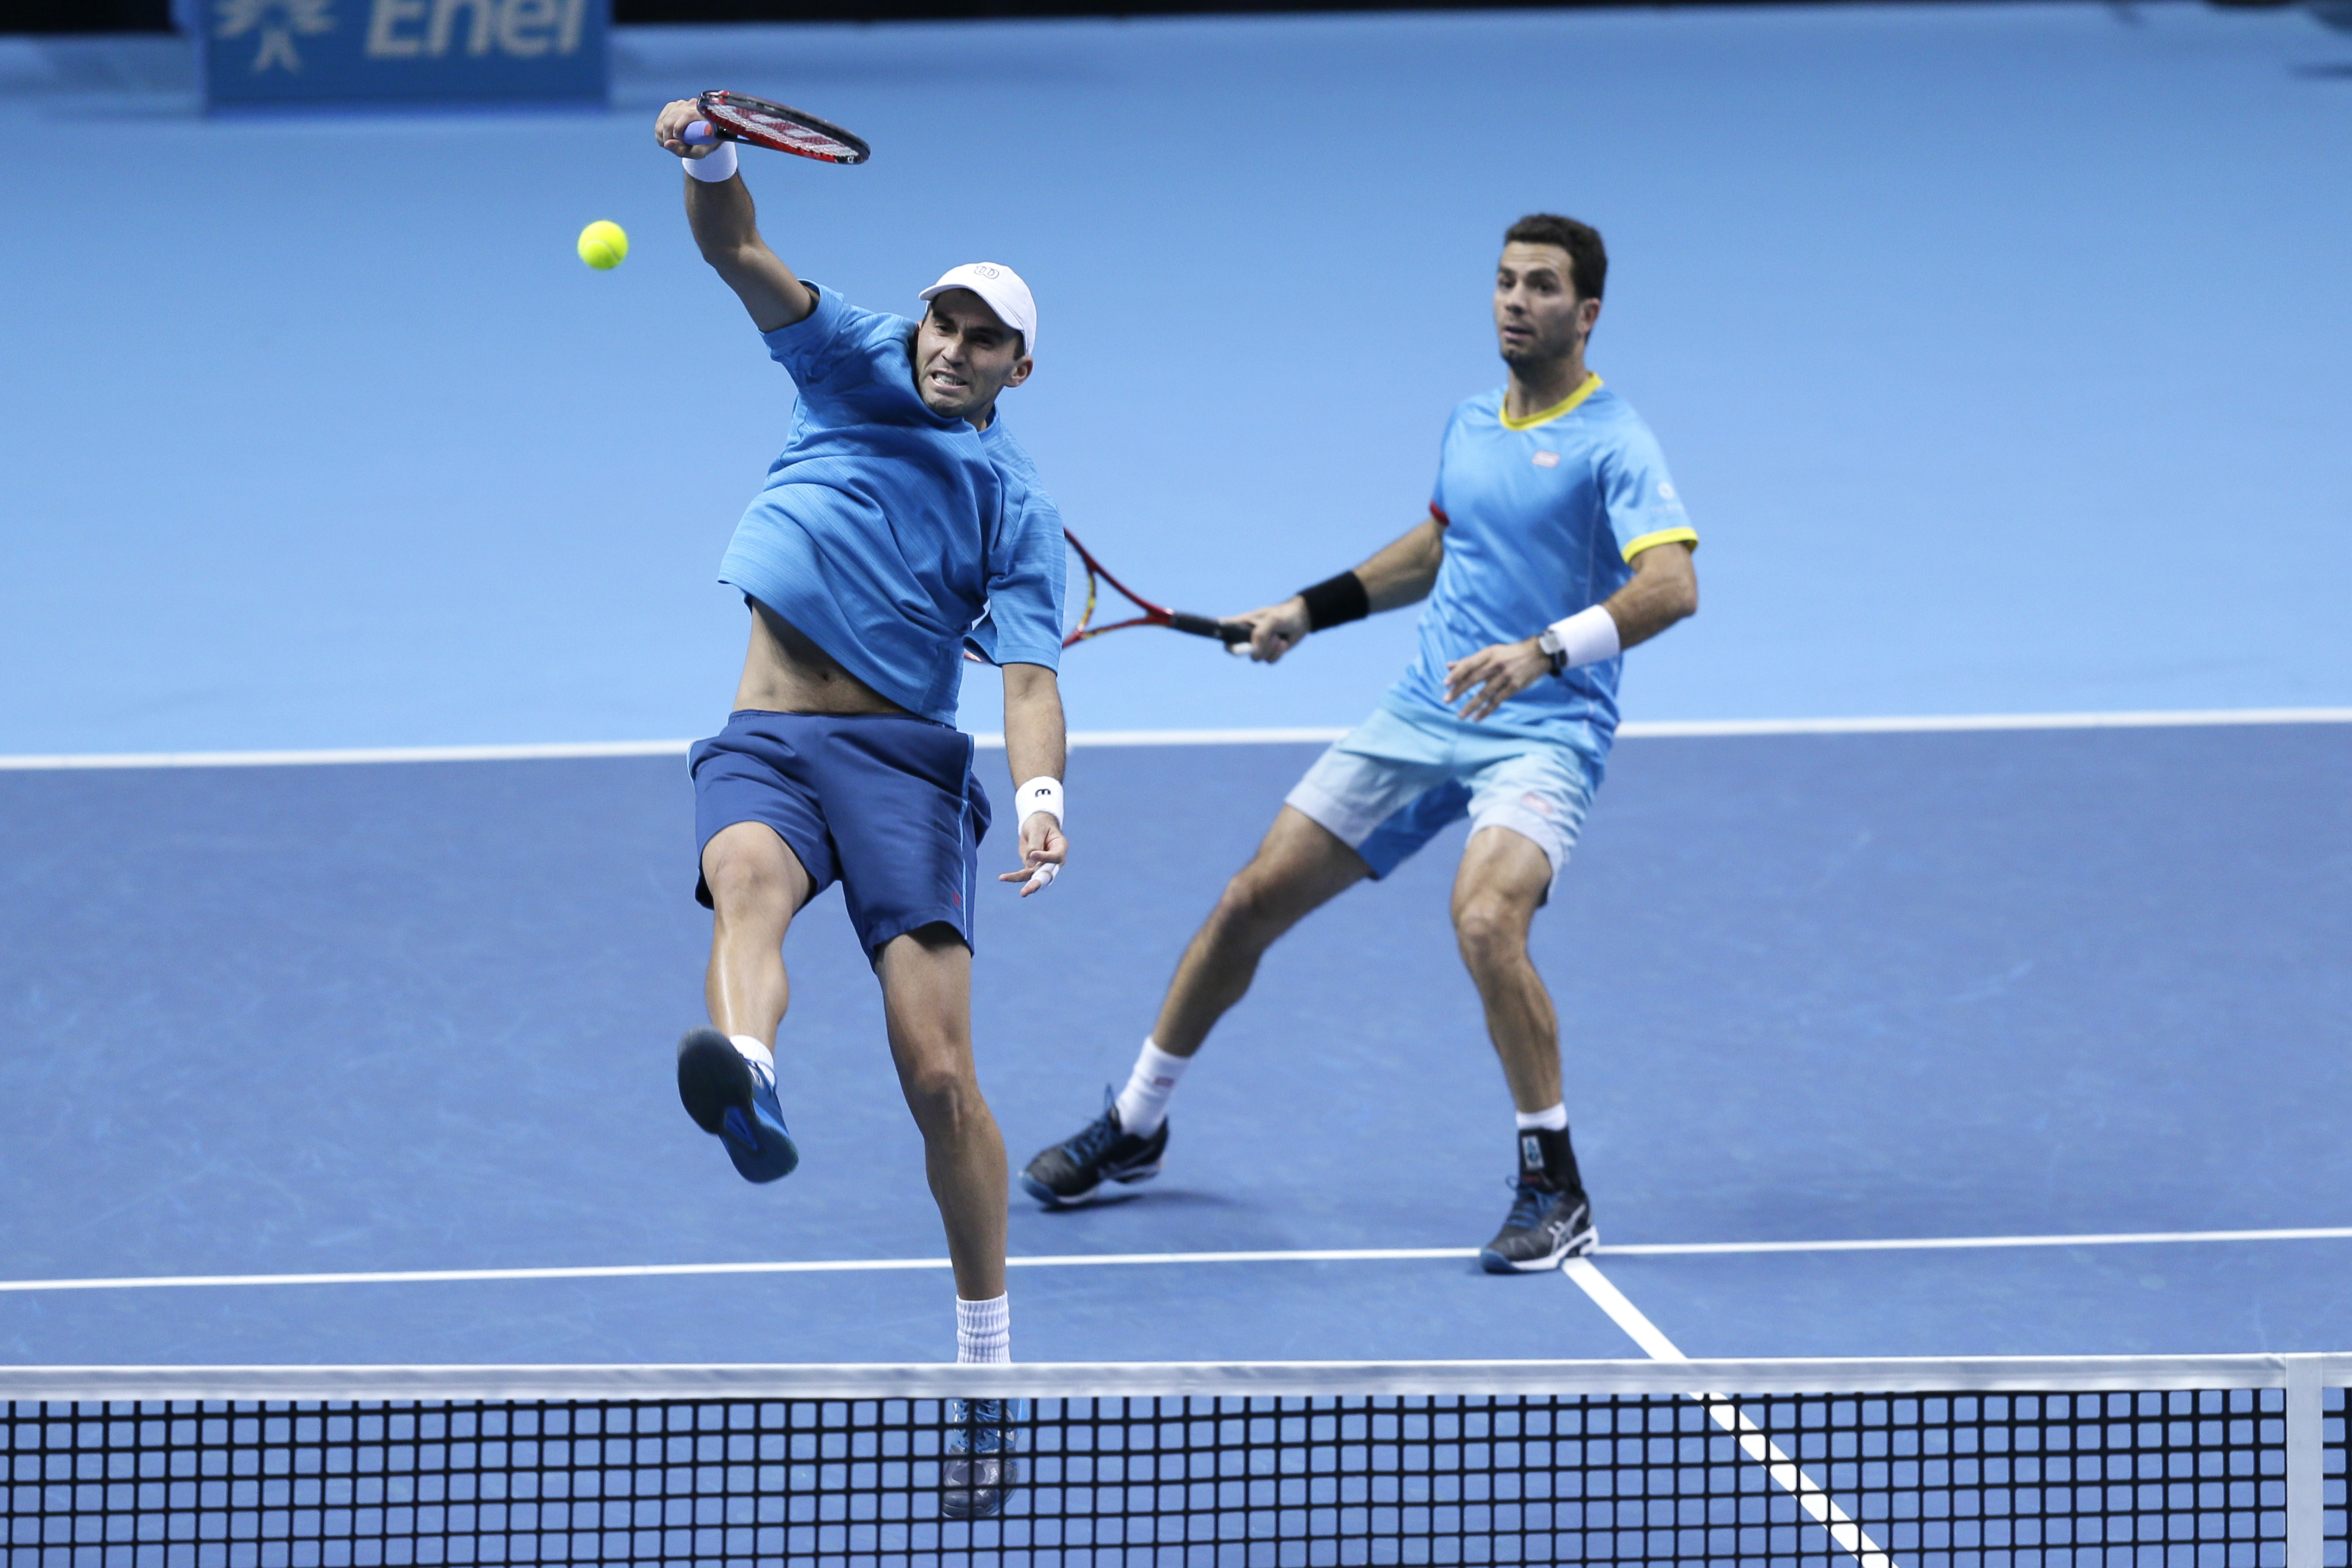 Netherlands' Jean-Julien Rojer, right, watches as Romania's Horia Tecau plays a return to United States's Bob Bryan and Mike Bryan during their ATP World Tour Finals tennis semifinal doubles match at the O2 Arena in London, Saturday Nov. 21, 2015. (AP Pho